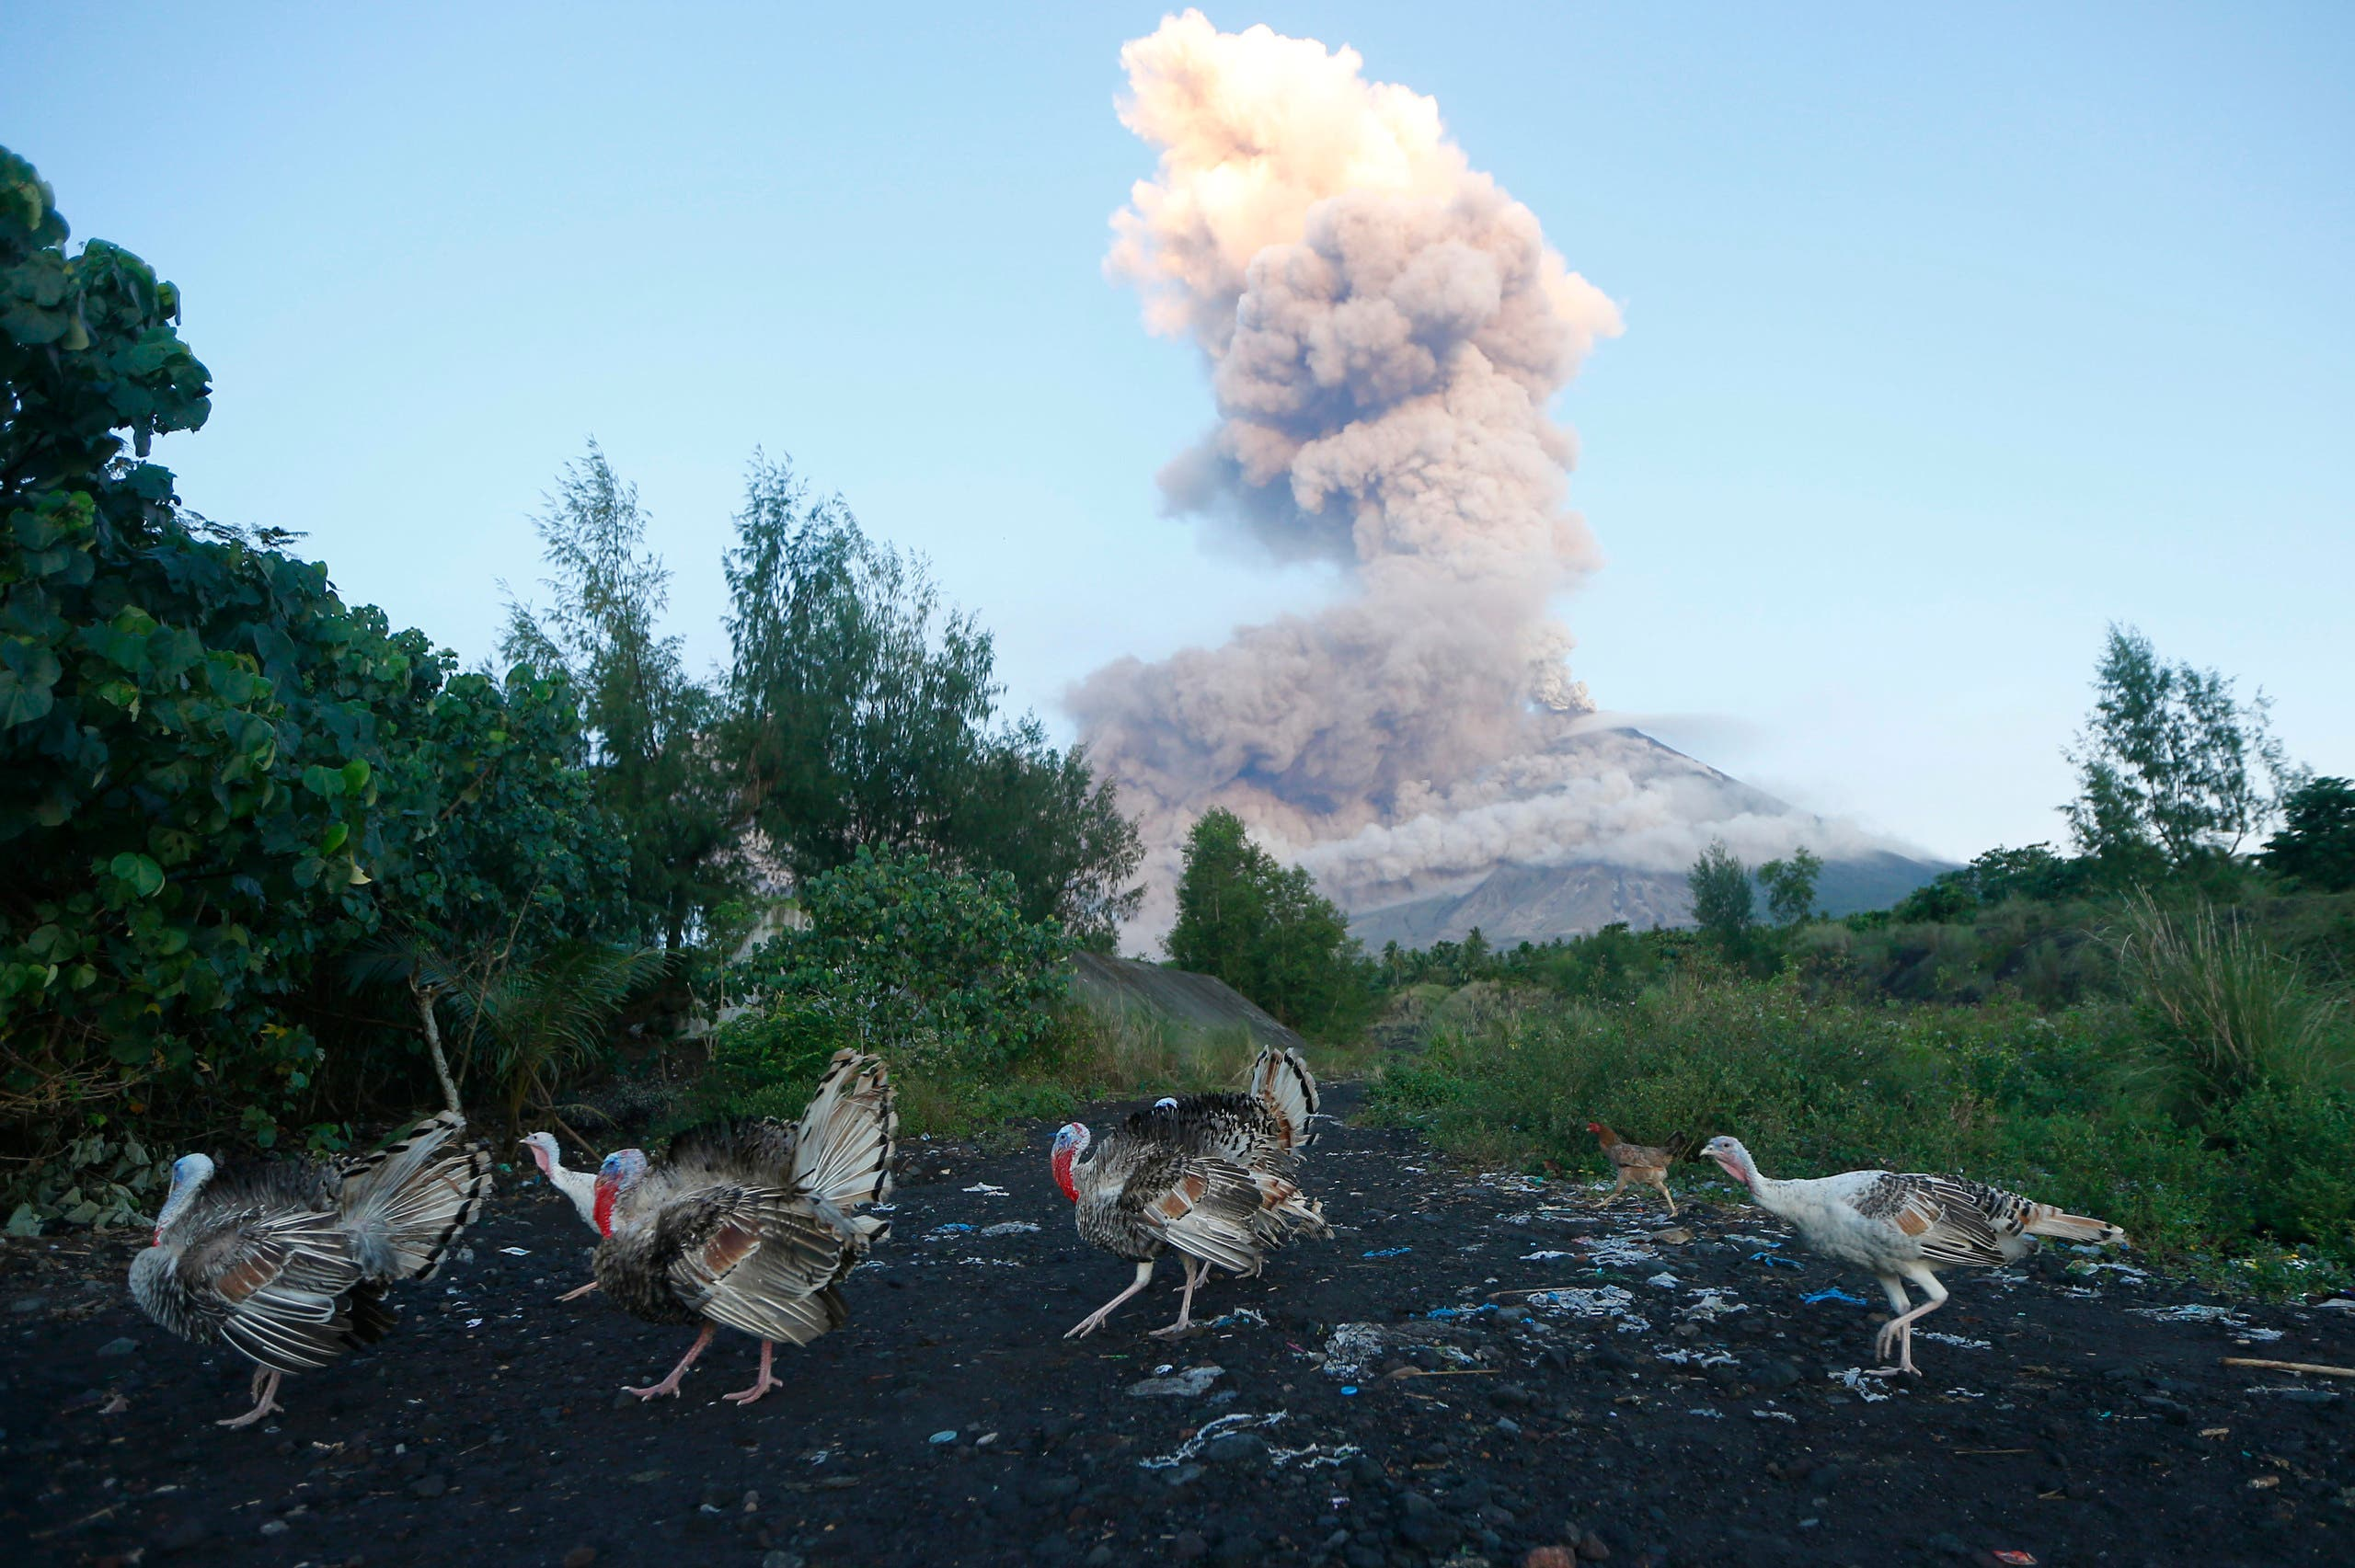 A flock of turkeys searches for food amidst an erupting Mayon volcano as seen from Legazpi city, Albay province, around 340 kilometers (200 miles) southeast of Manila, Philippines, Wednesday, Jan. 24, 2018.